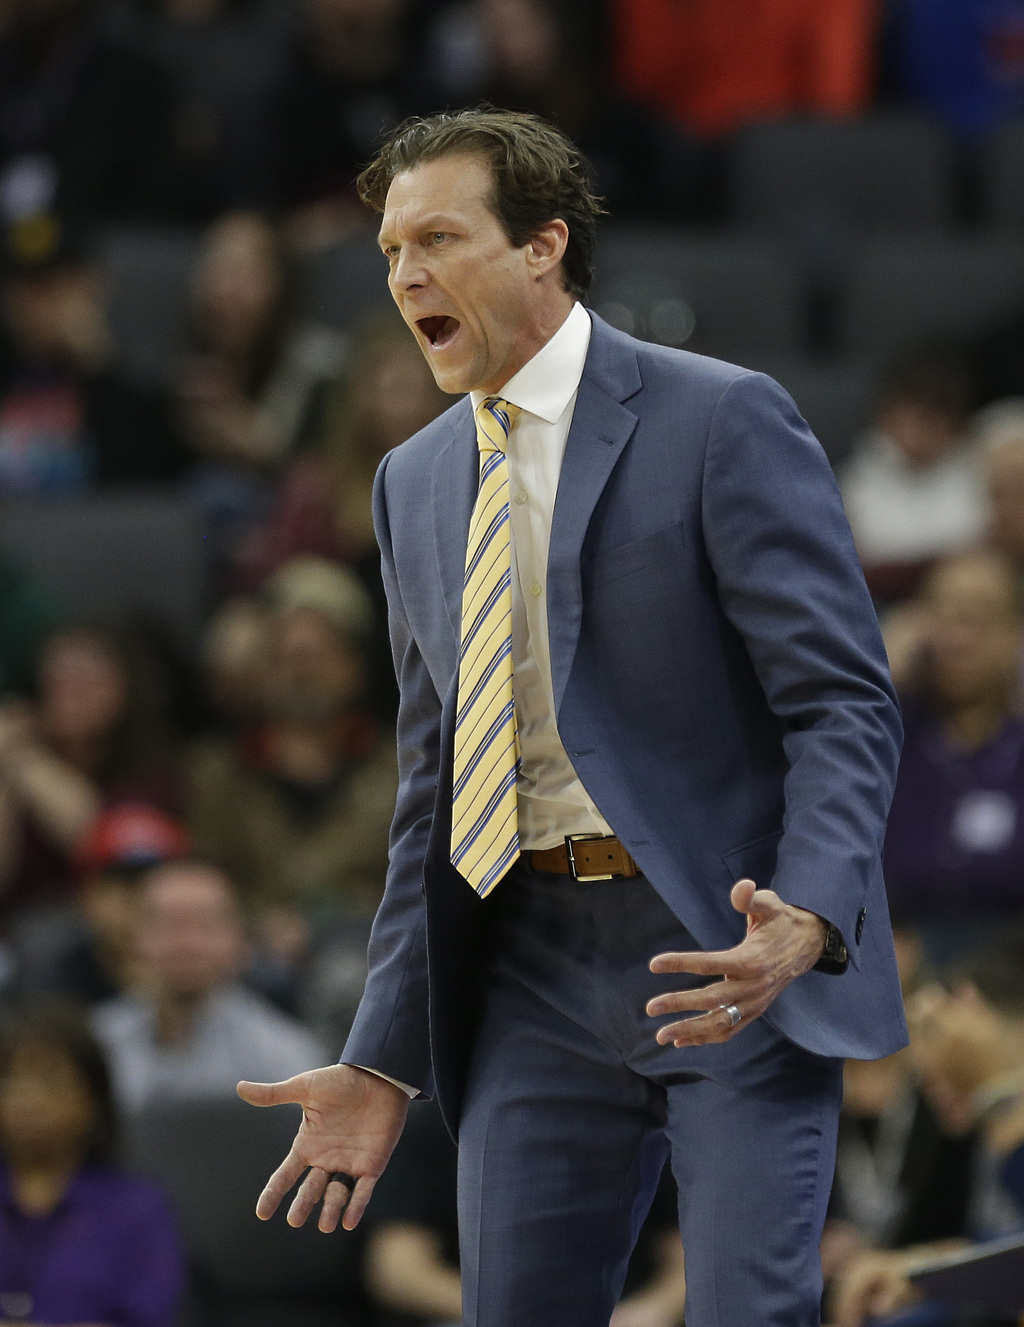 Utah Jazz head coach Quin Snyder calls out instructions to his team during the first half of an NBA basketball game against the Sacrame...